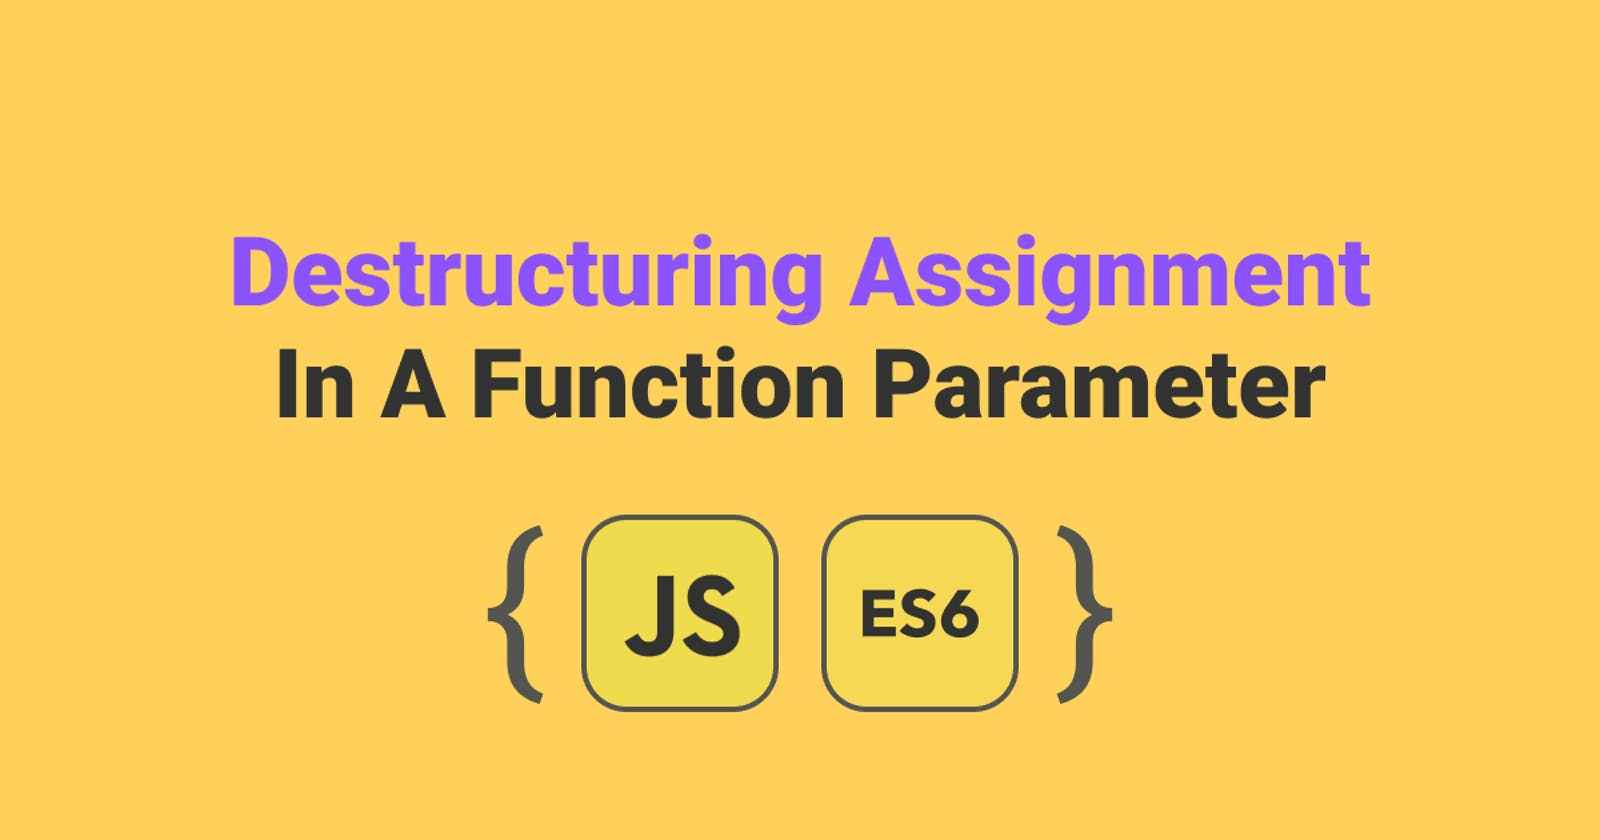 Destructuring Assignment In A Function Parameter